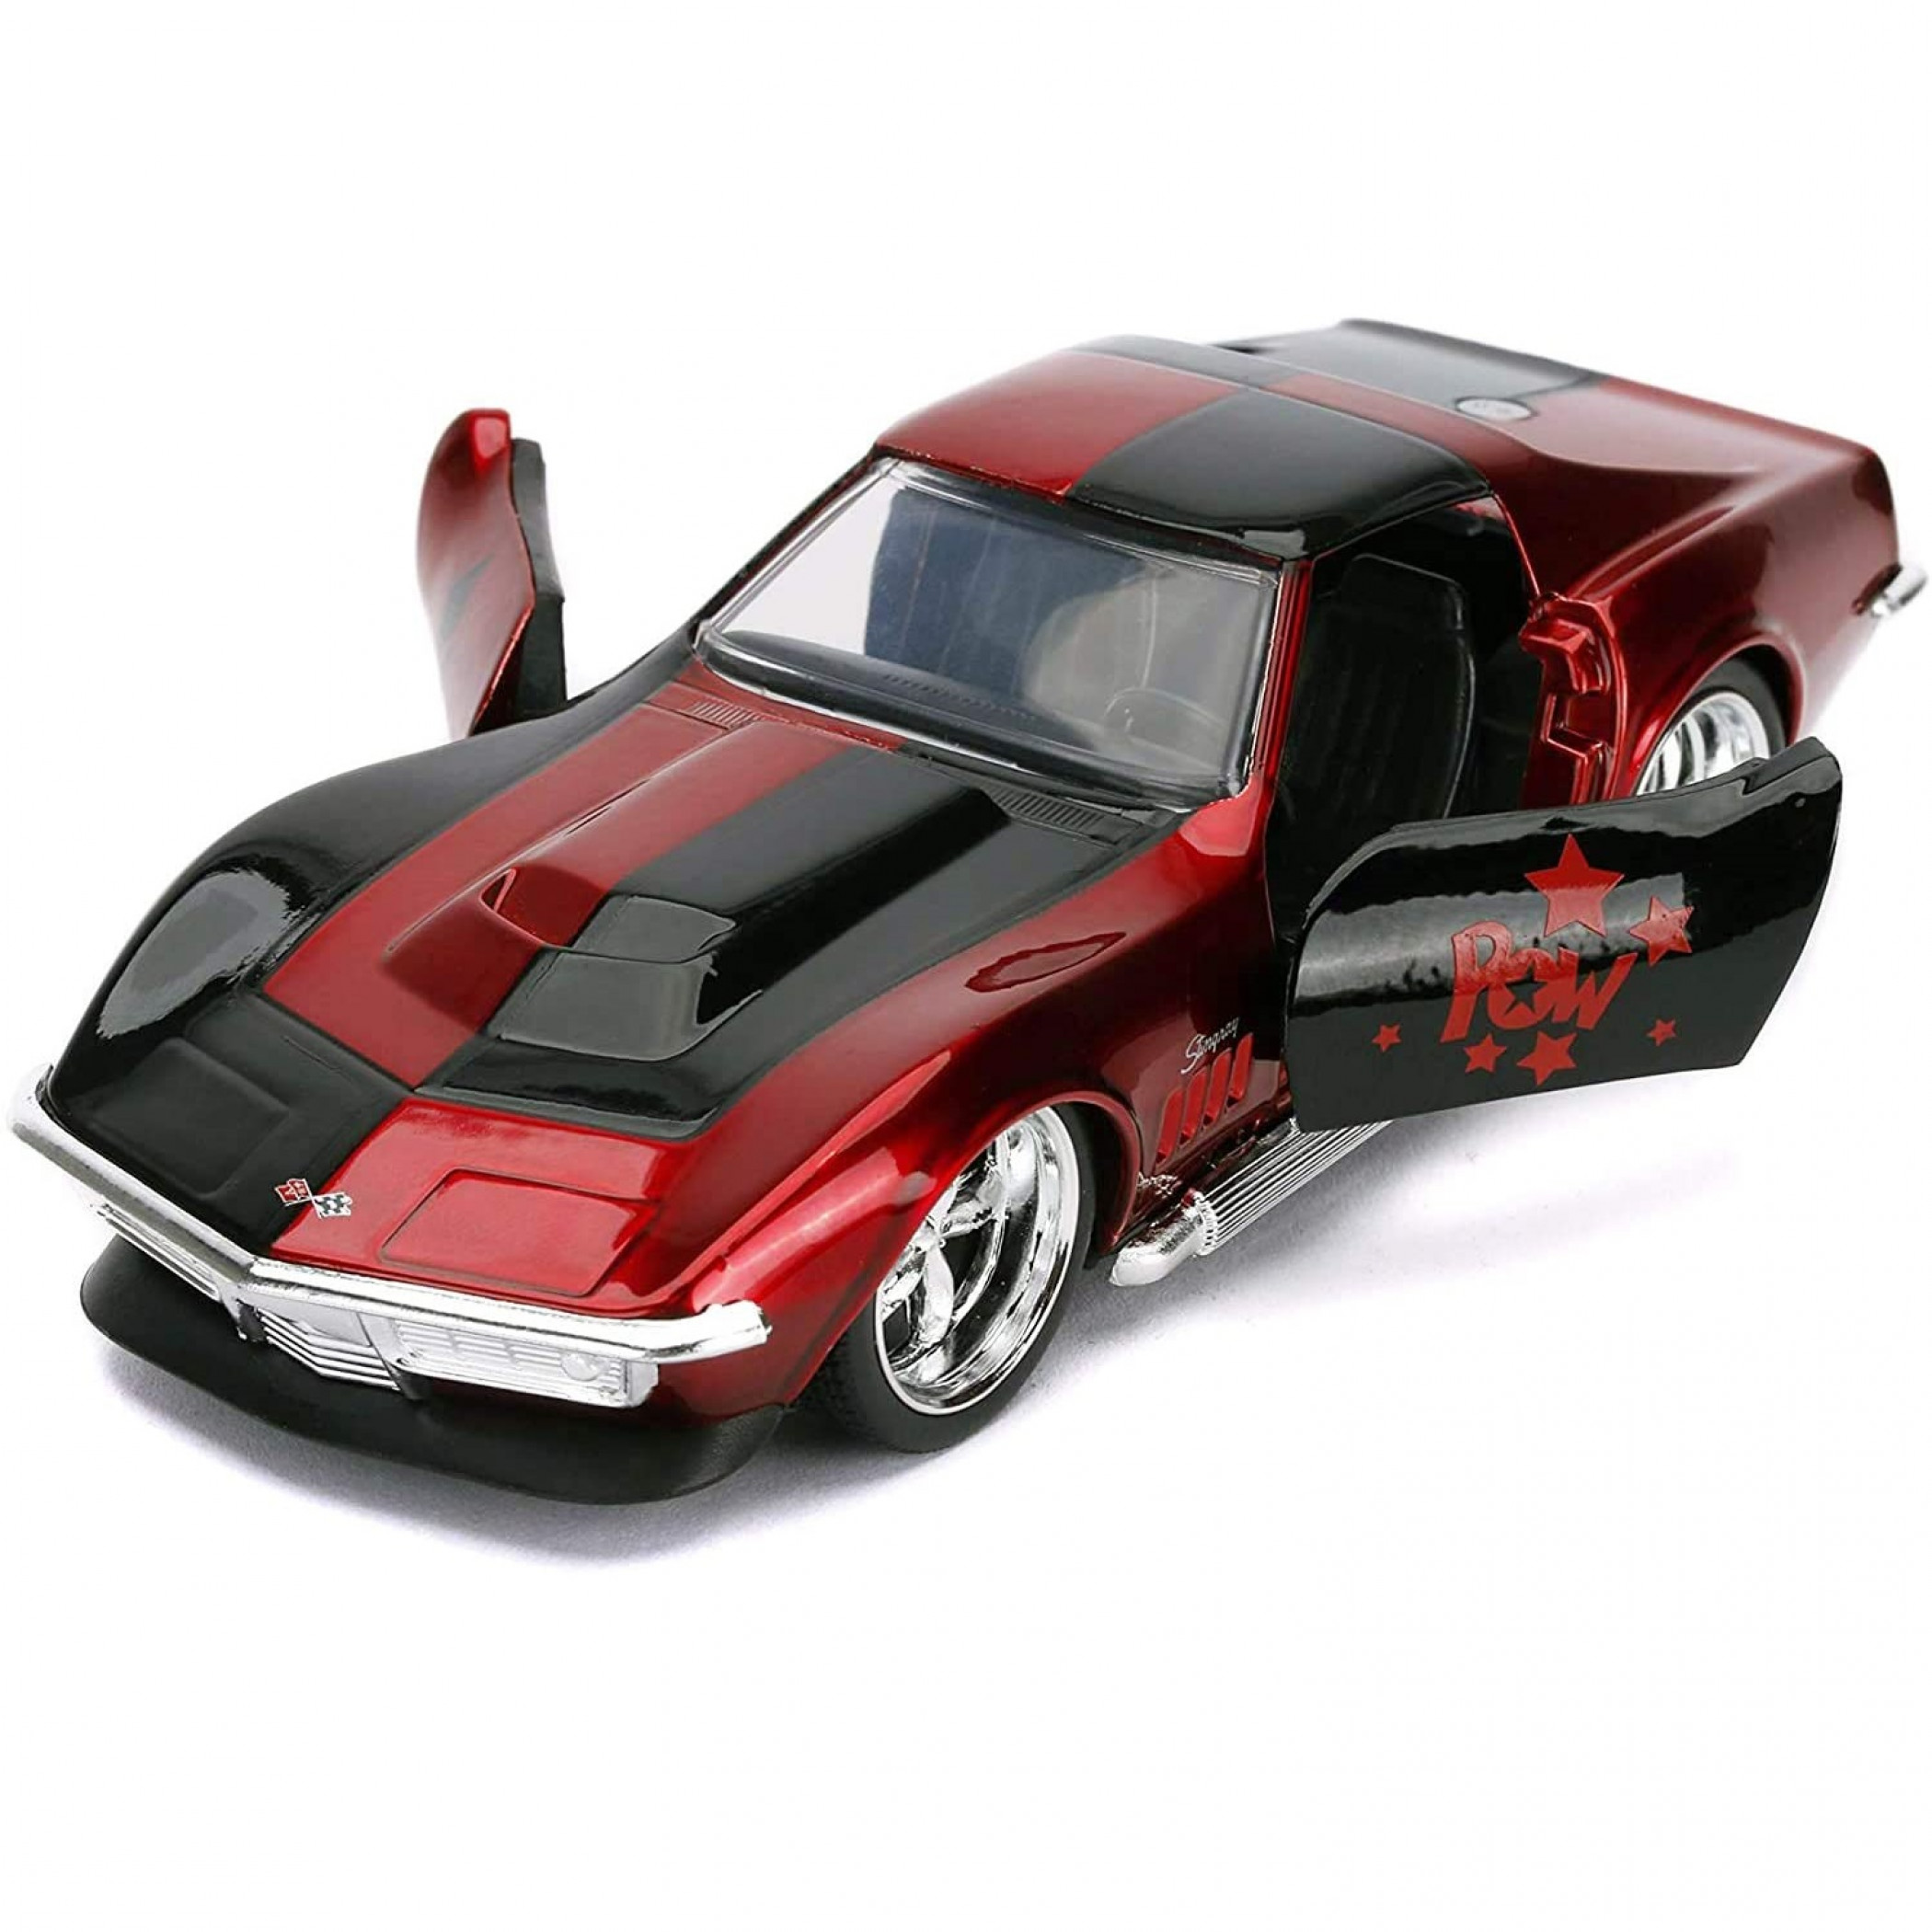 "Harley Quinn Chevy Corvette Stingray Diecast Metal 5"" Movie Car by Jada Toys"